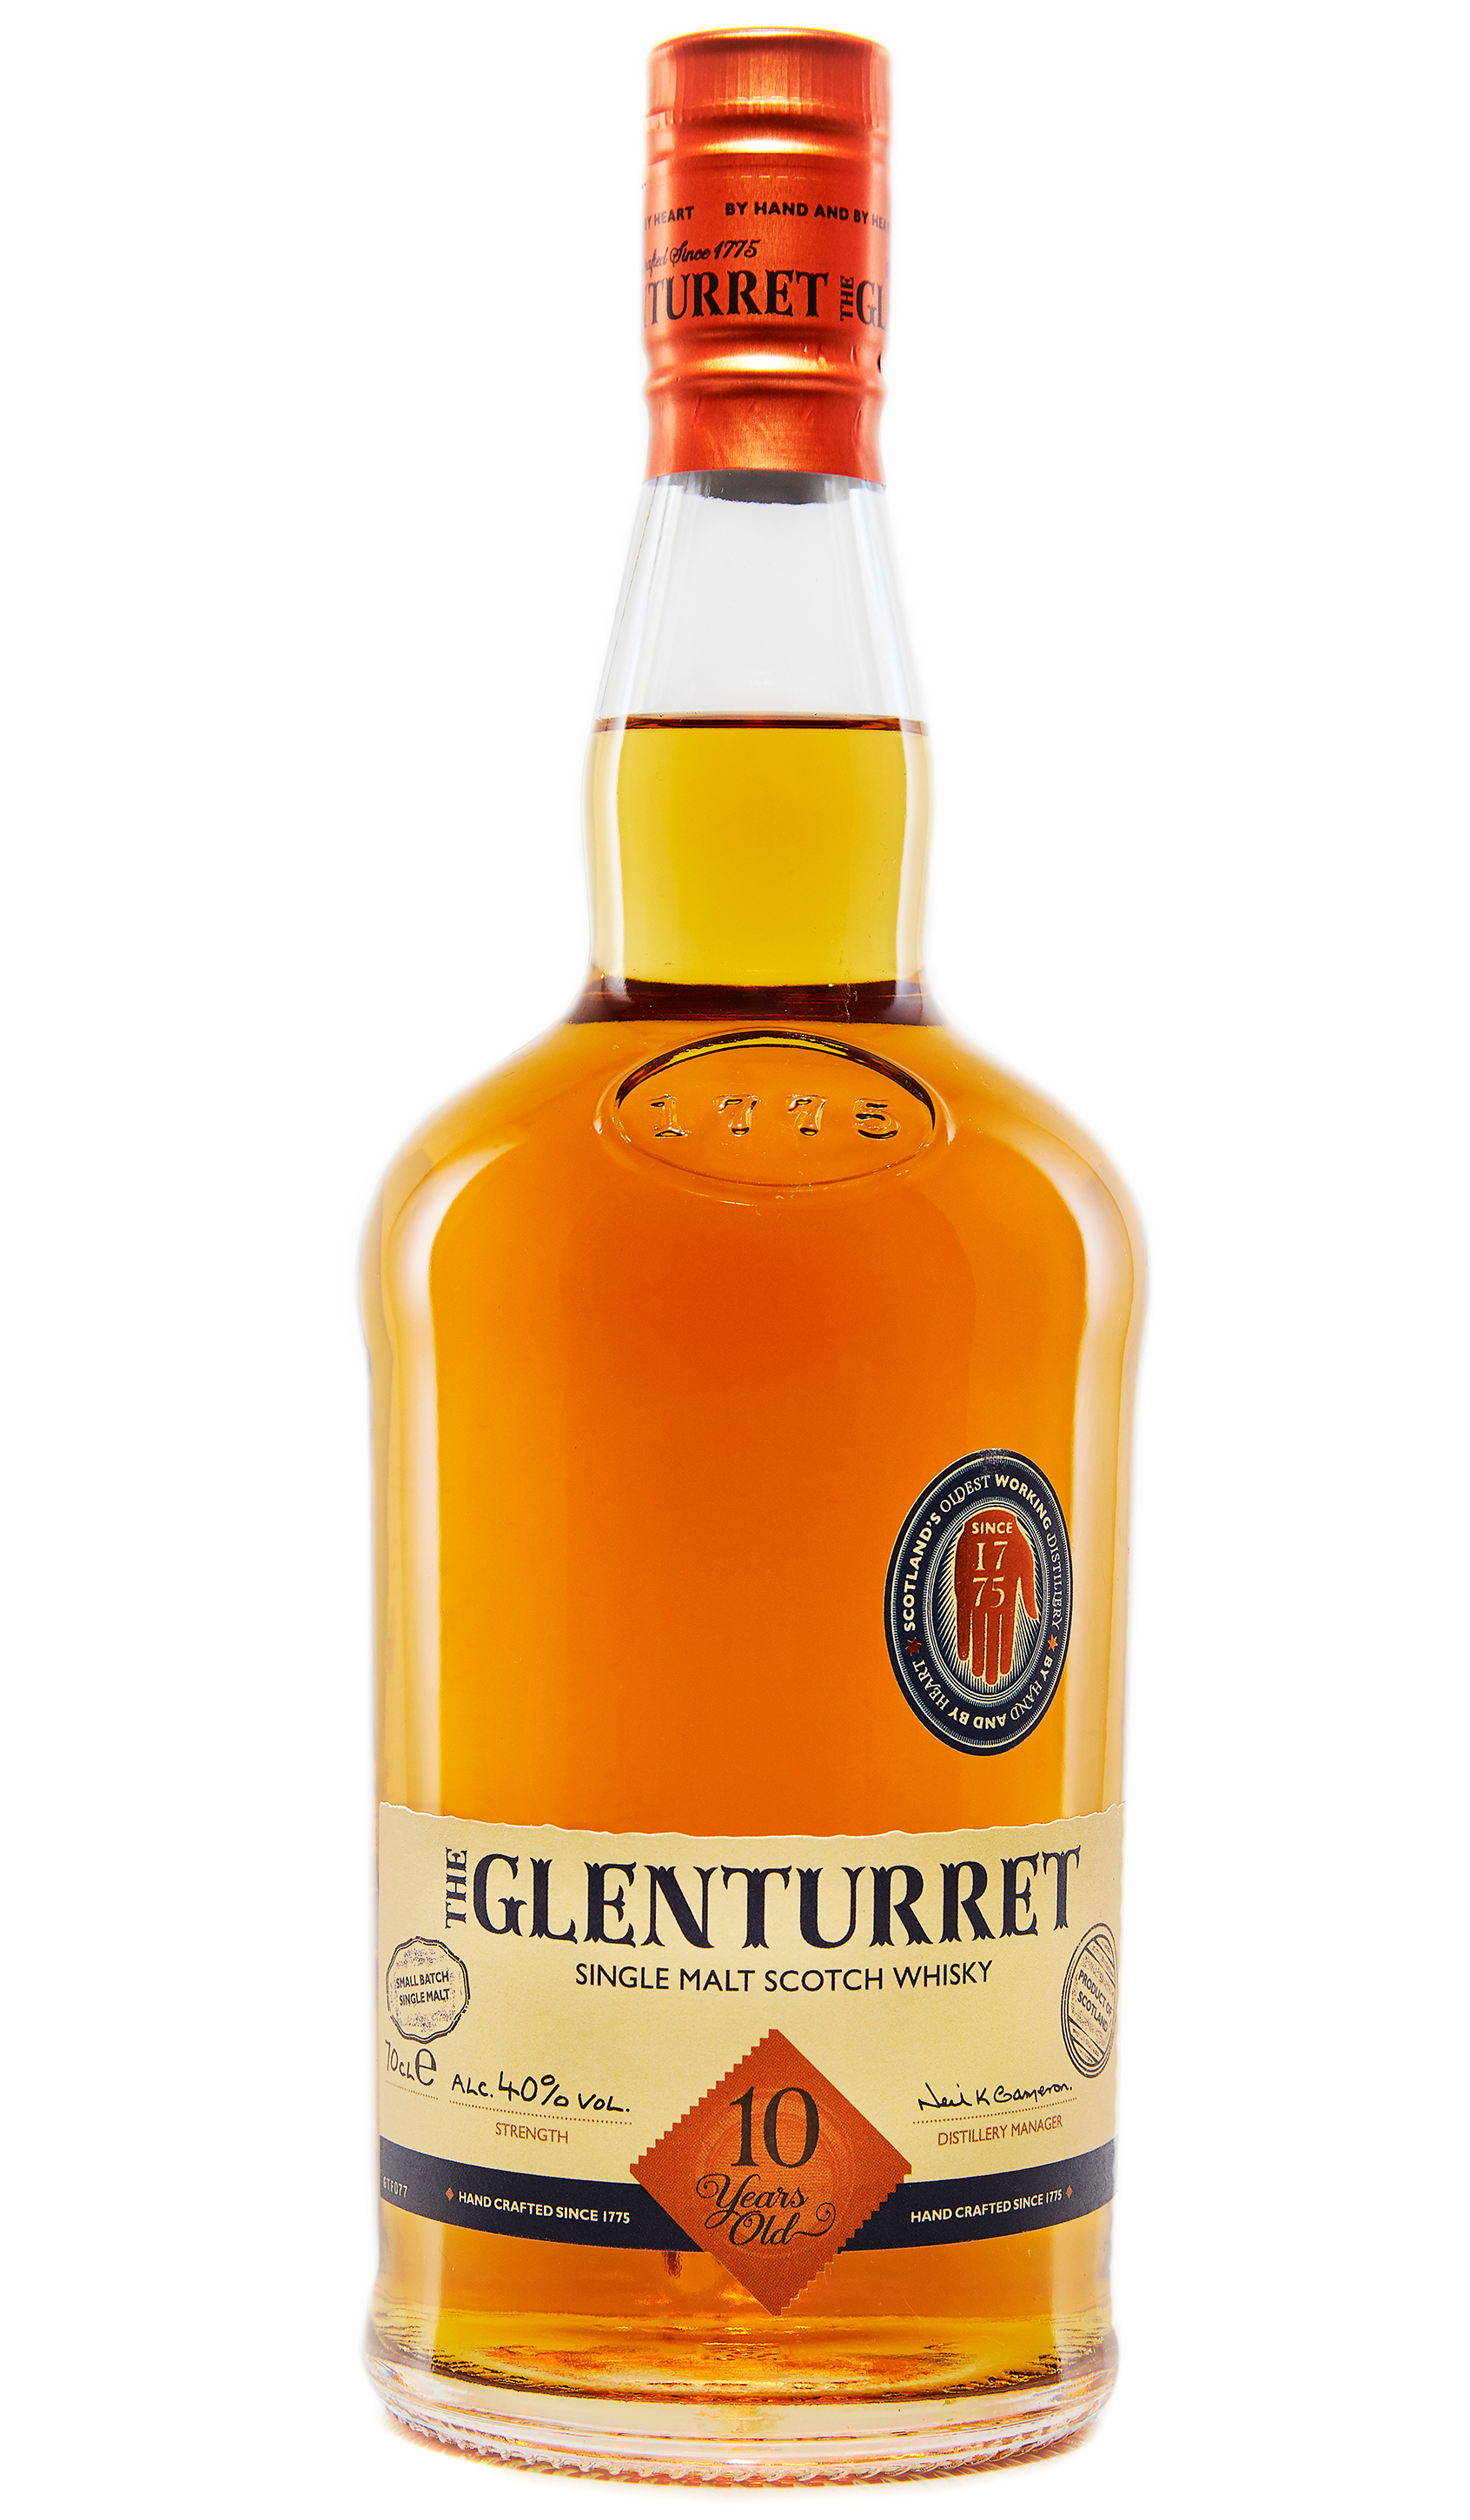 10 years old,